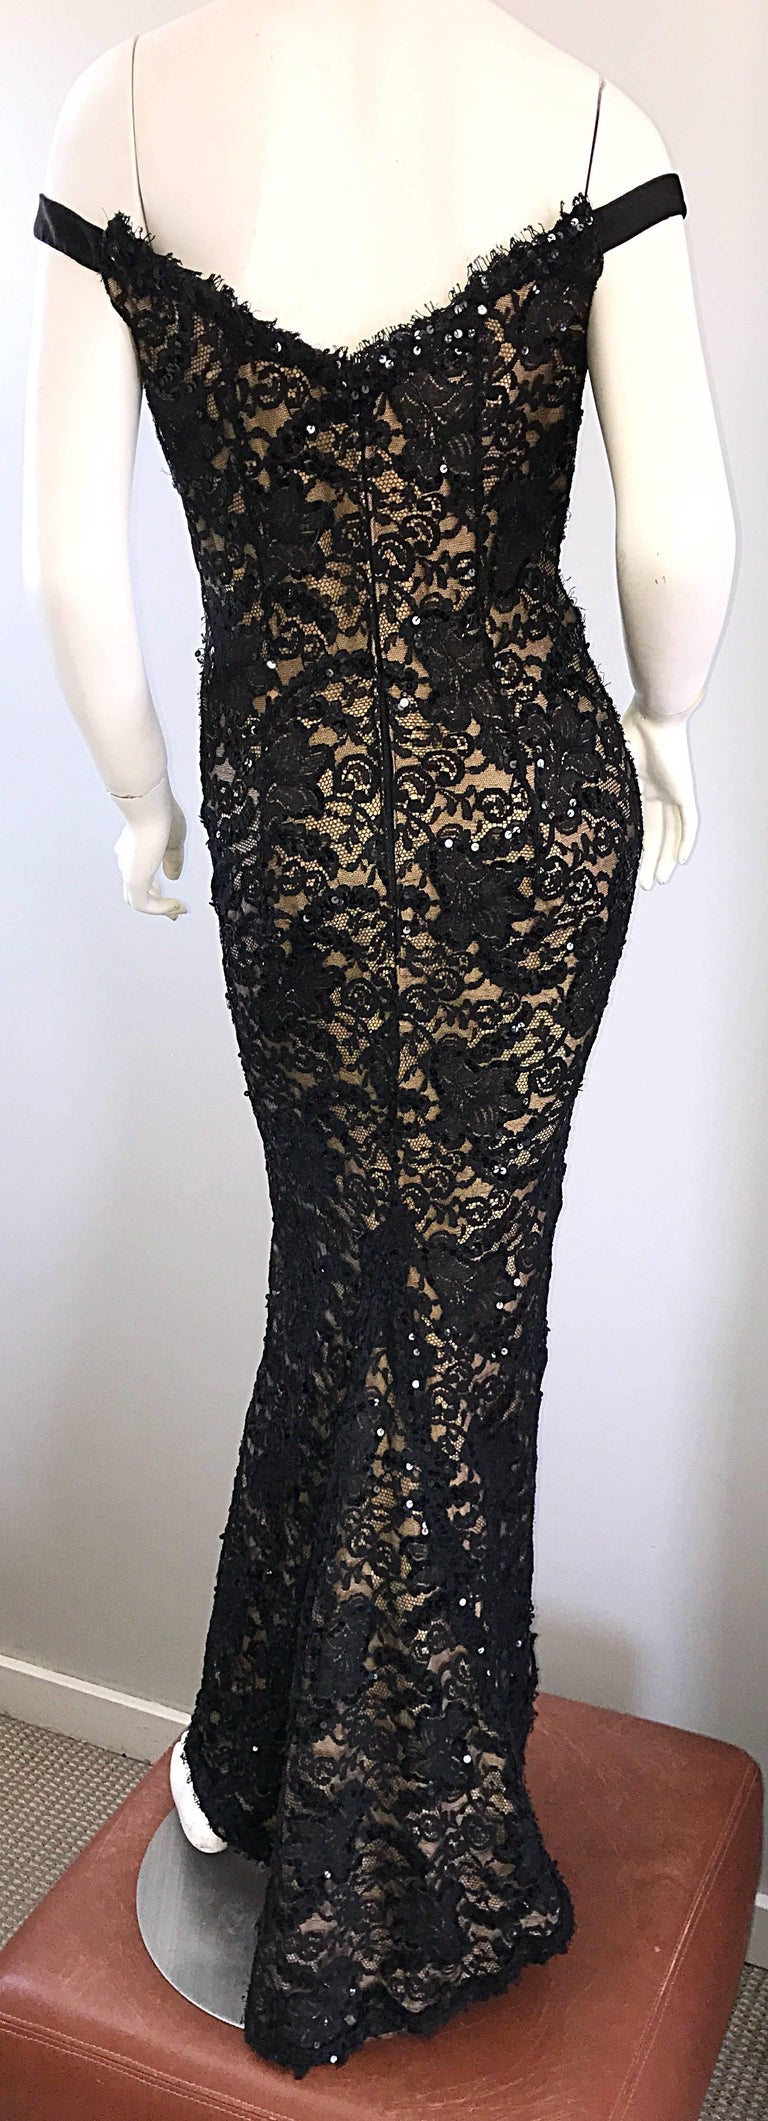 Women's Vintage Bob Mackie Black Lace Sequin Size 8 1990s 90s Evening Off Shoulder Gown  For Sale